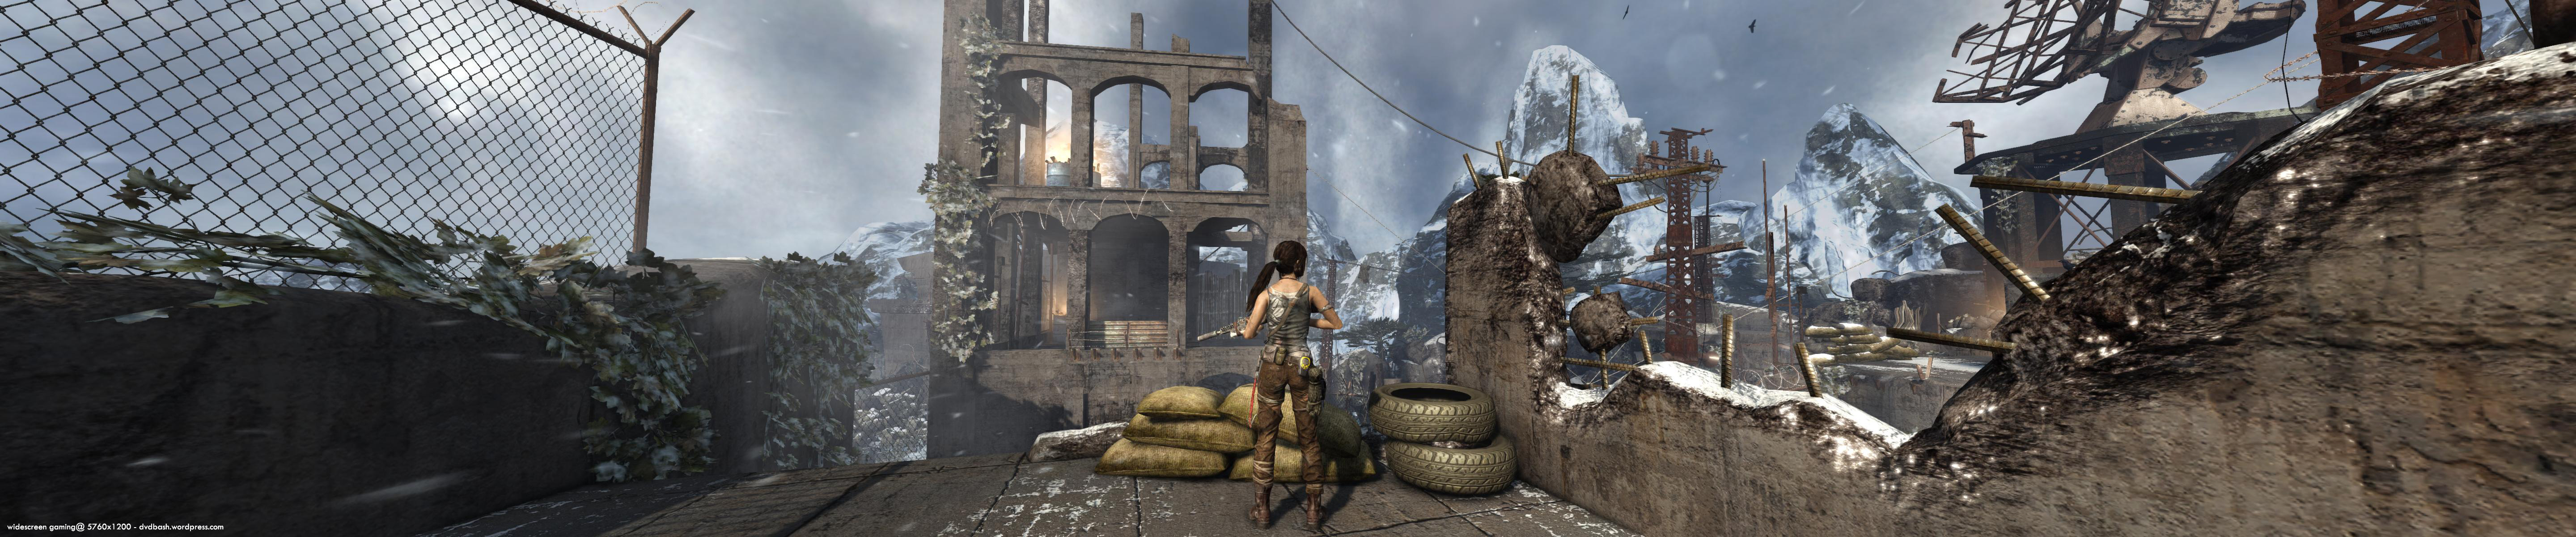 Widescreen Gaming 5760 1200 Tomb Raider 2013 Lara Croft Dvdbash